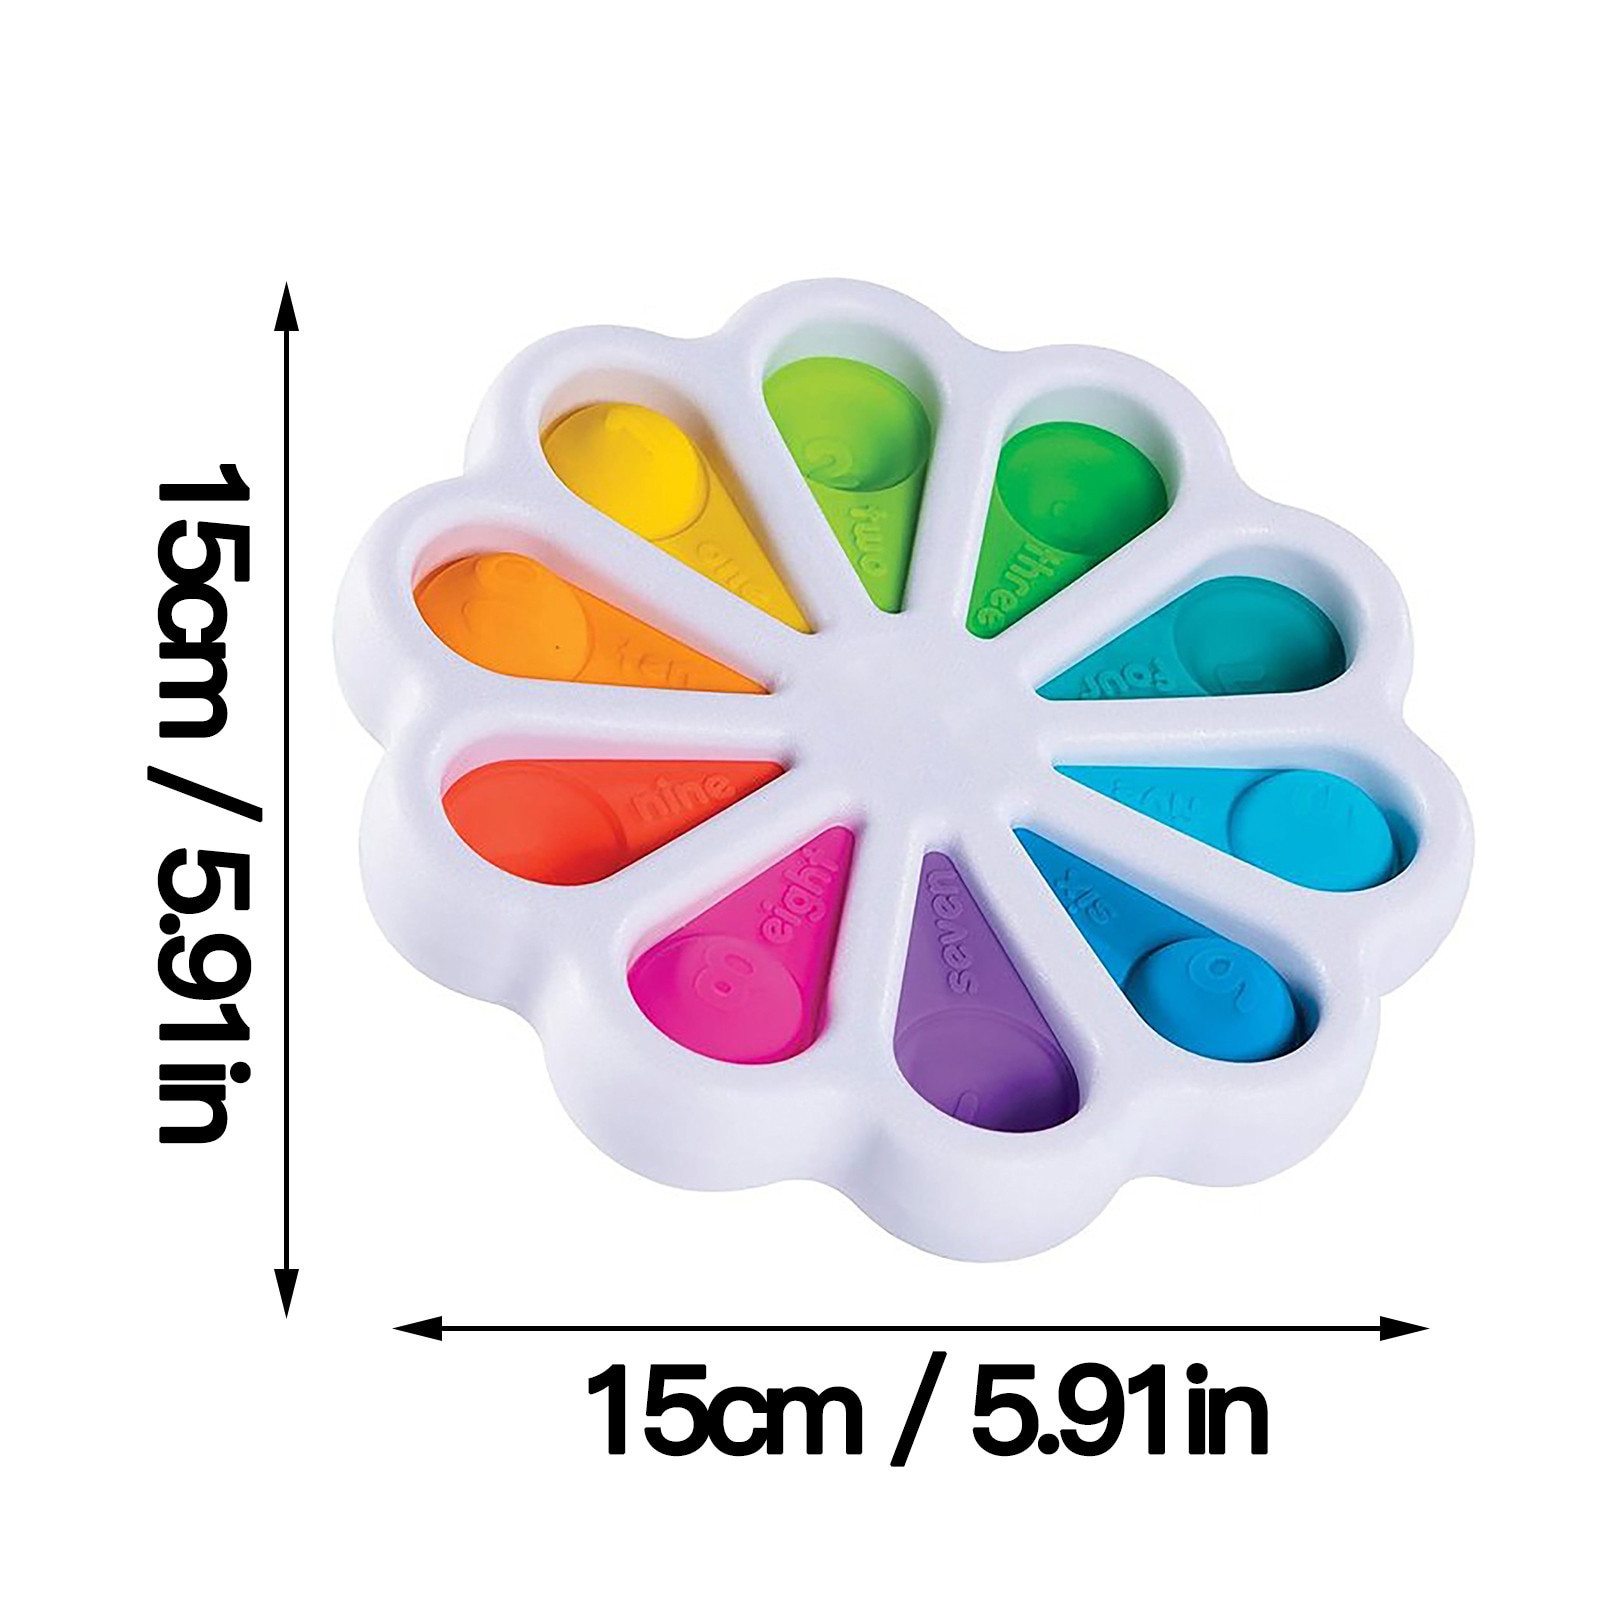 Fidget Dimple Toy Stress Relief Hand Toys for Kids Easy To Use Soft Silicone Children Toys Antistress Hand Fidget Toys enlarge